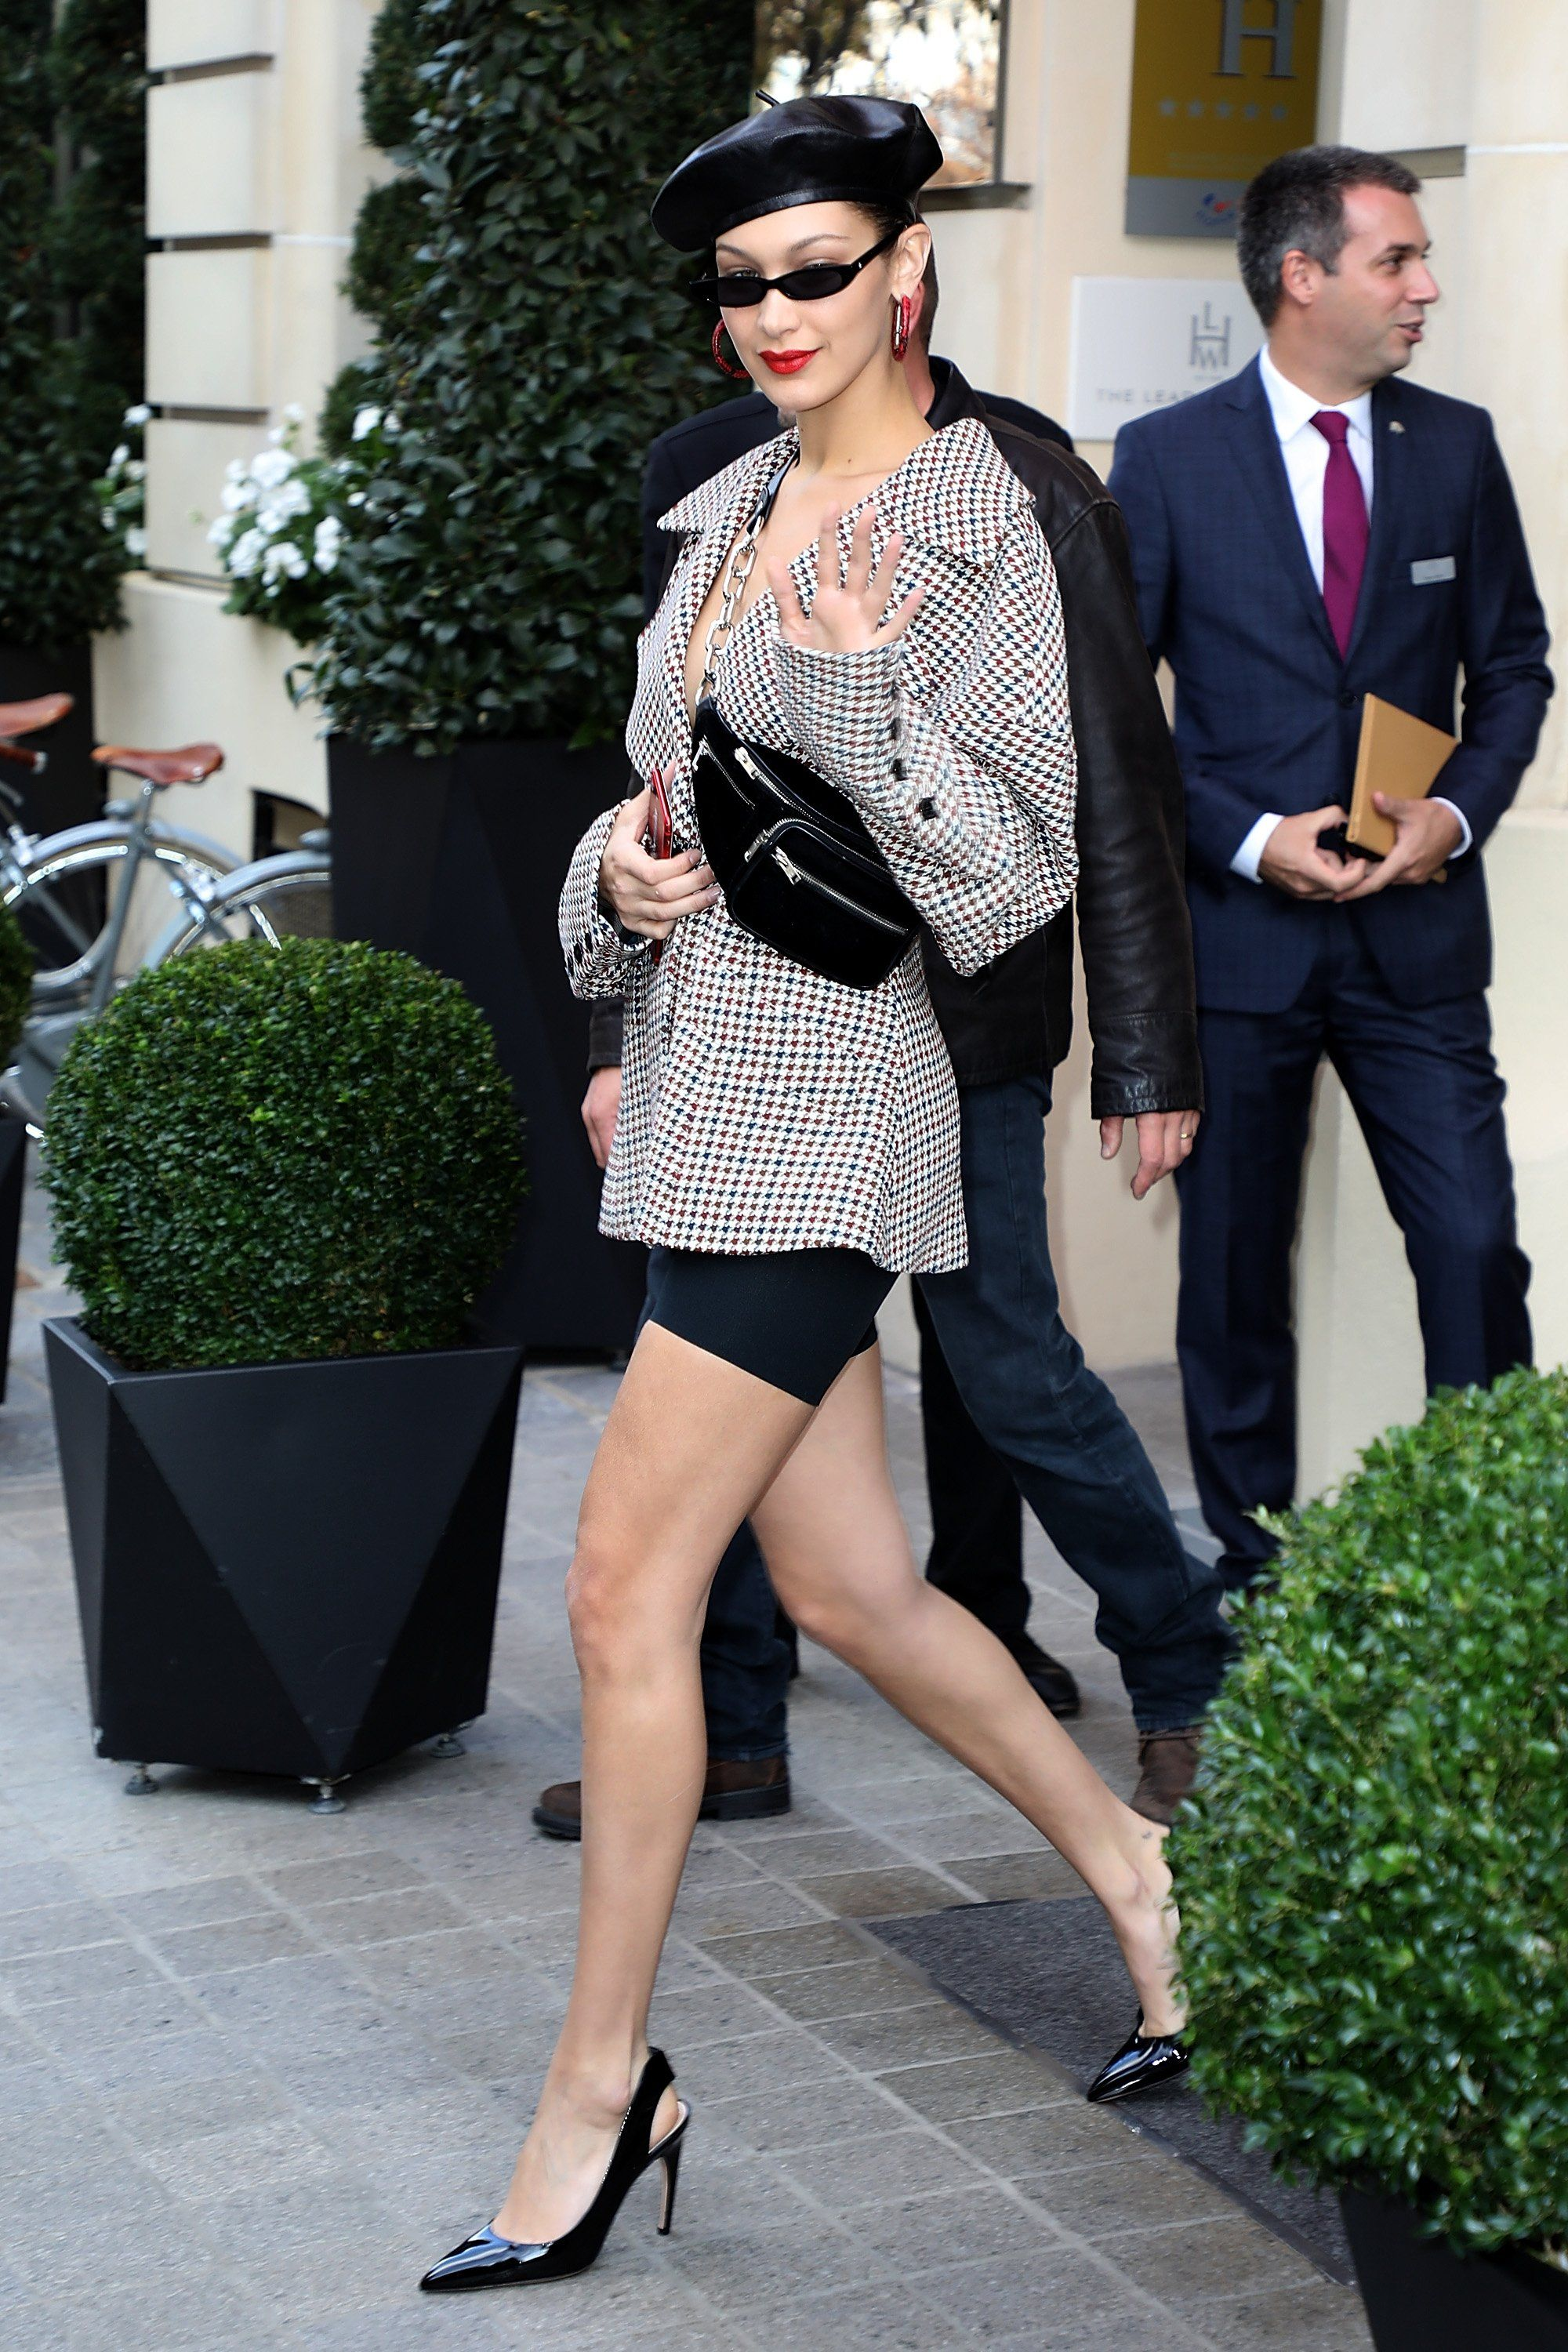 Bella Hadid stepped onto the streets of Paris in Commando classic control short, Claudia Li blazer, and sling-back pumps.